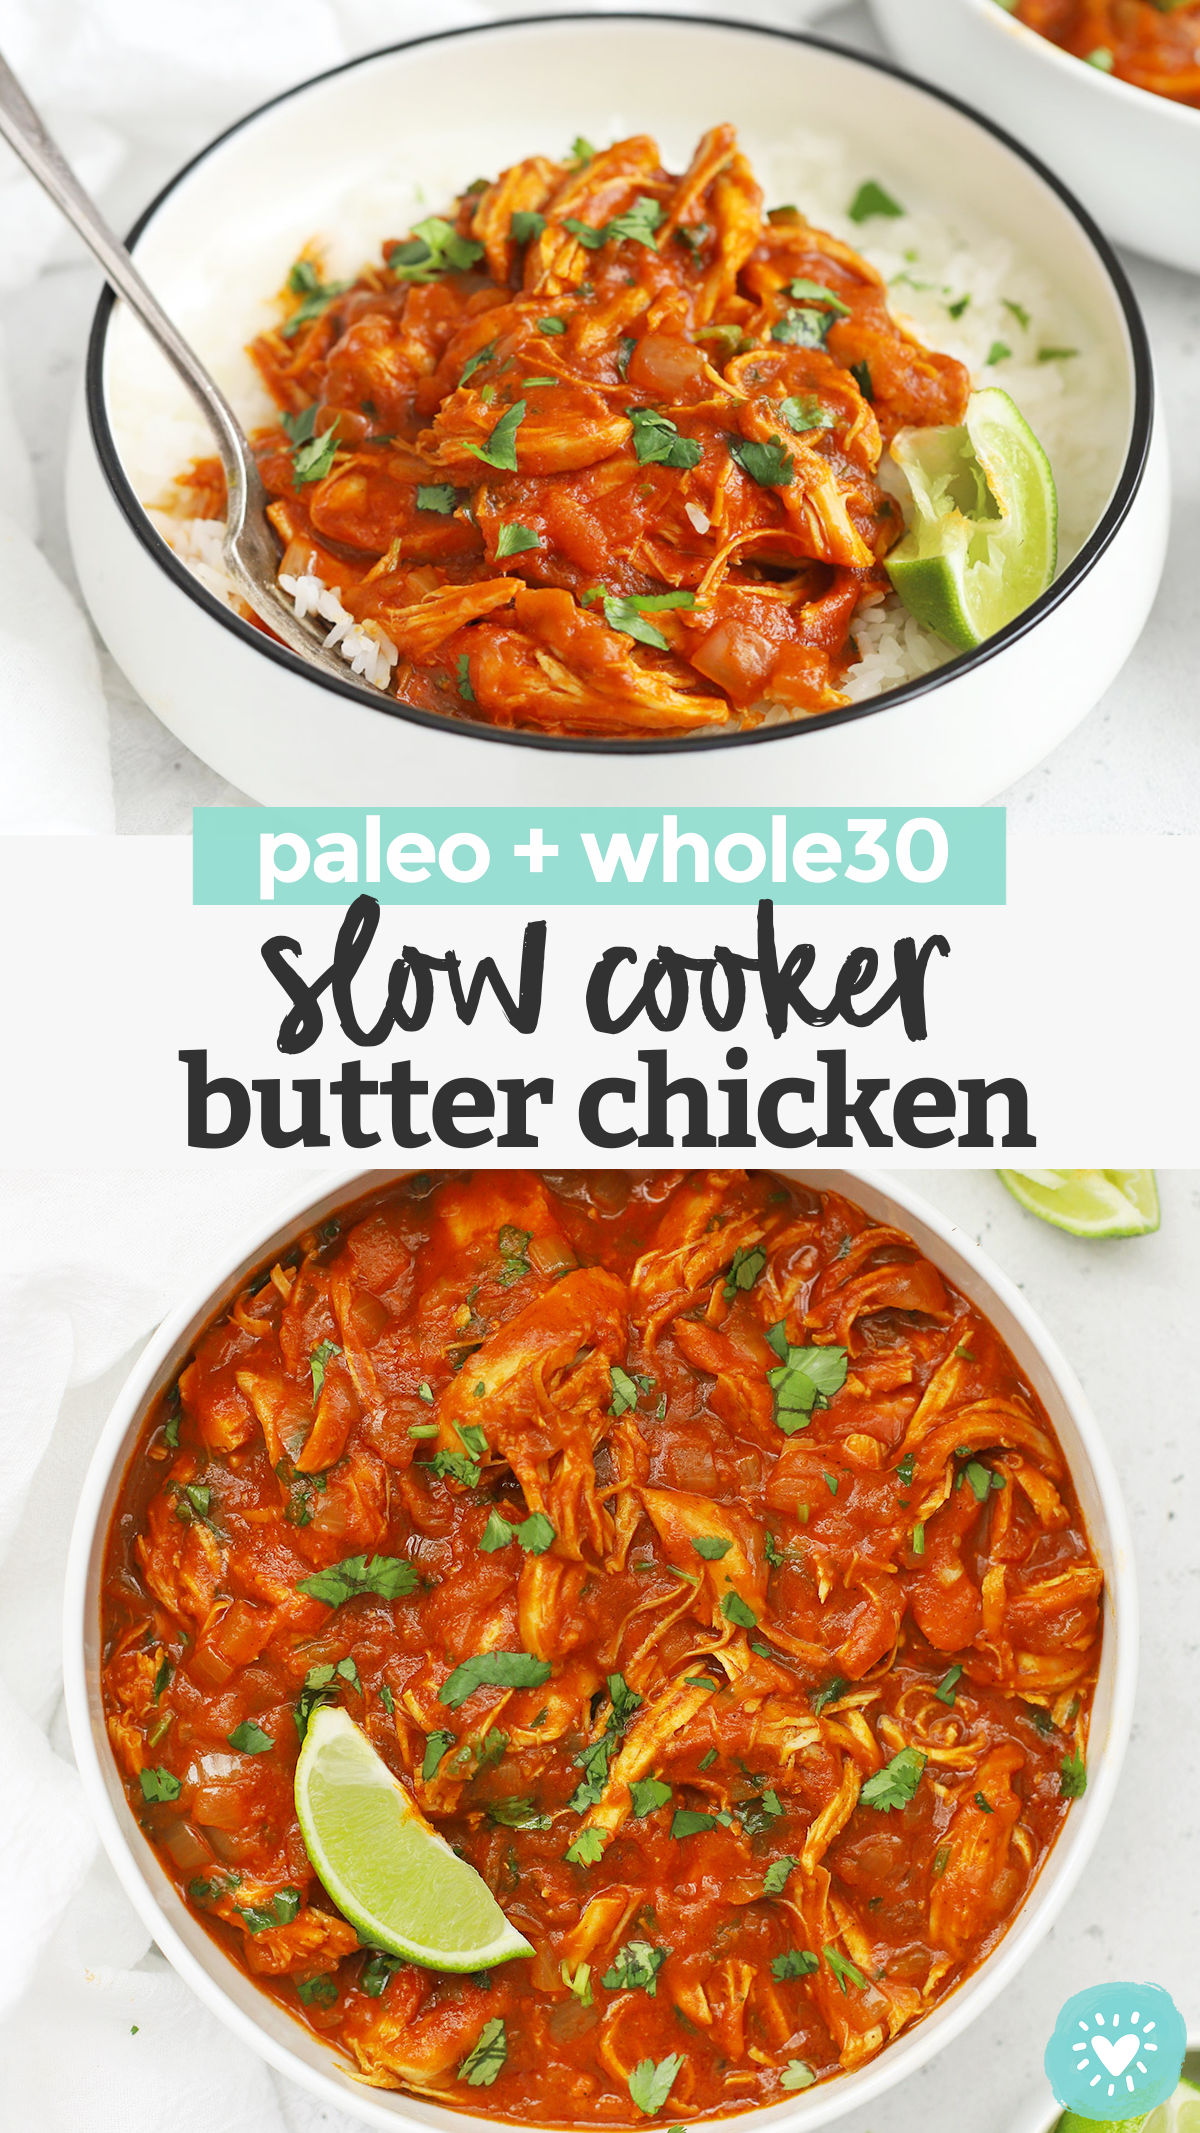 Slow Cooker Butter Chicken - This paleo butter chicken recipe is a perfect HEALTHY slow cooker dinner! It's so easy and delicious, you'll want to slurp the sauce with a spoon! (Gluten-Free, Dairy-Free, Paleo, Whole30) // Whole30 butter chicken // crock pot butter chicken // dairy free butter chicken // Paleo Slow Cooker Recipe #slowcooker #crockpot #butterchicken #chicken